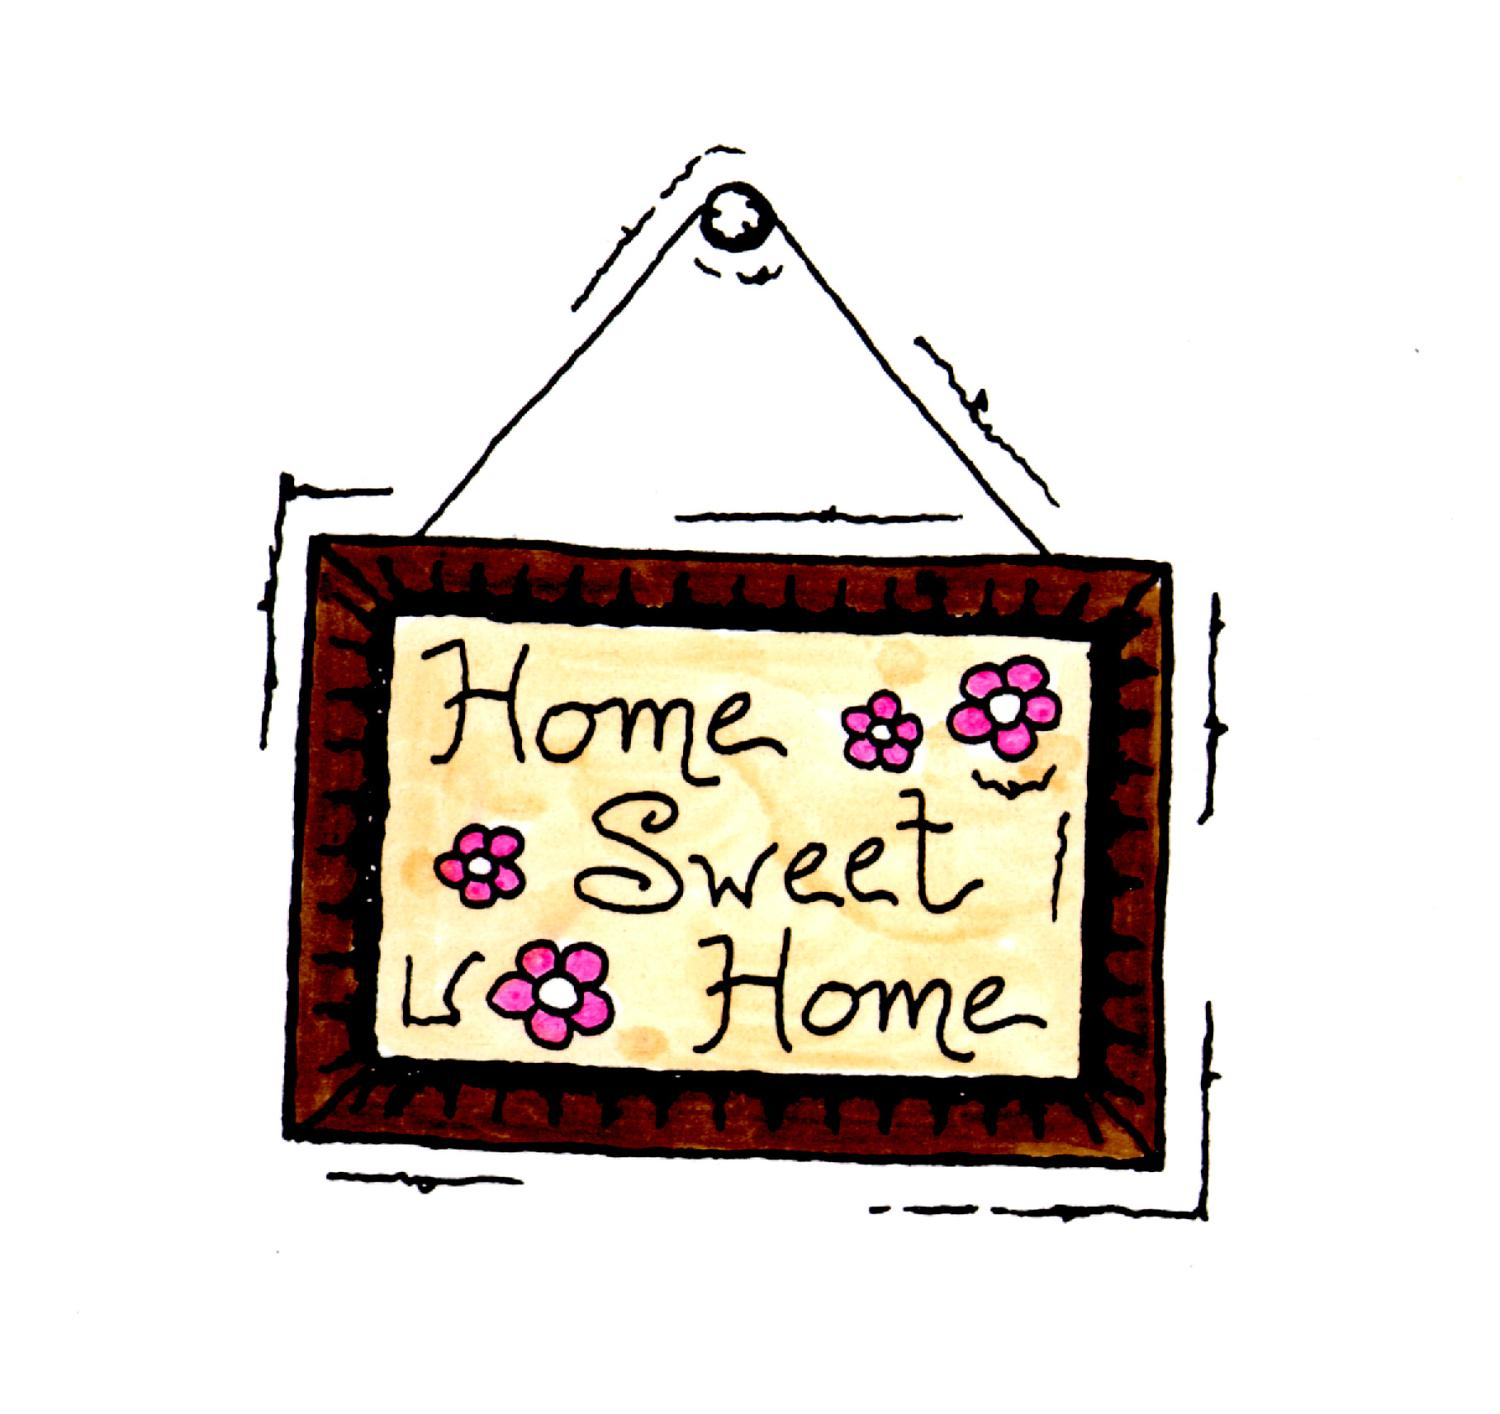 Copy_of_home_sweet_home.2451702.jpg